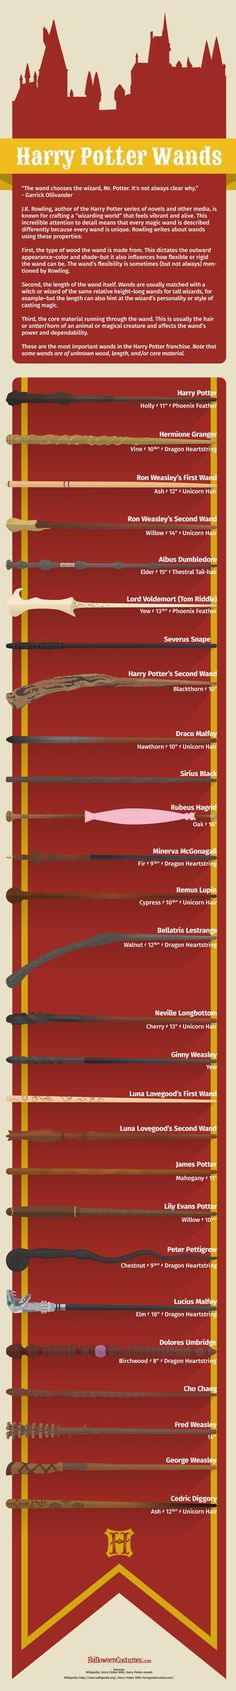 Most important wands from #HarryPotter